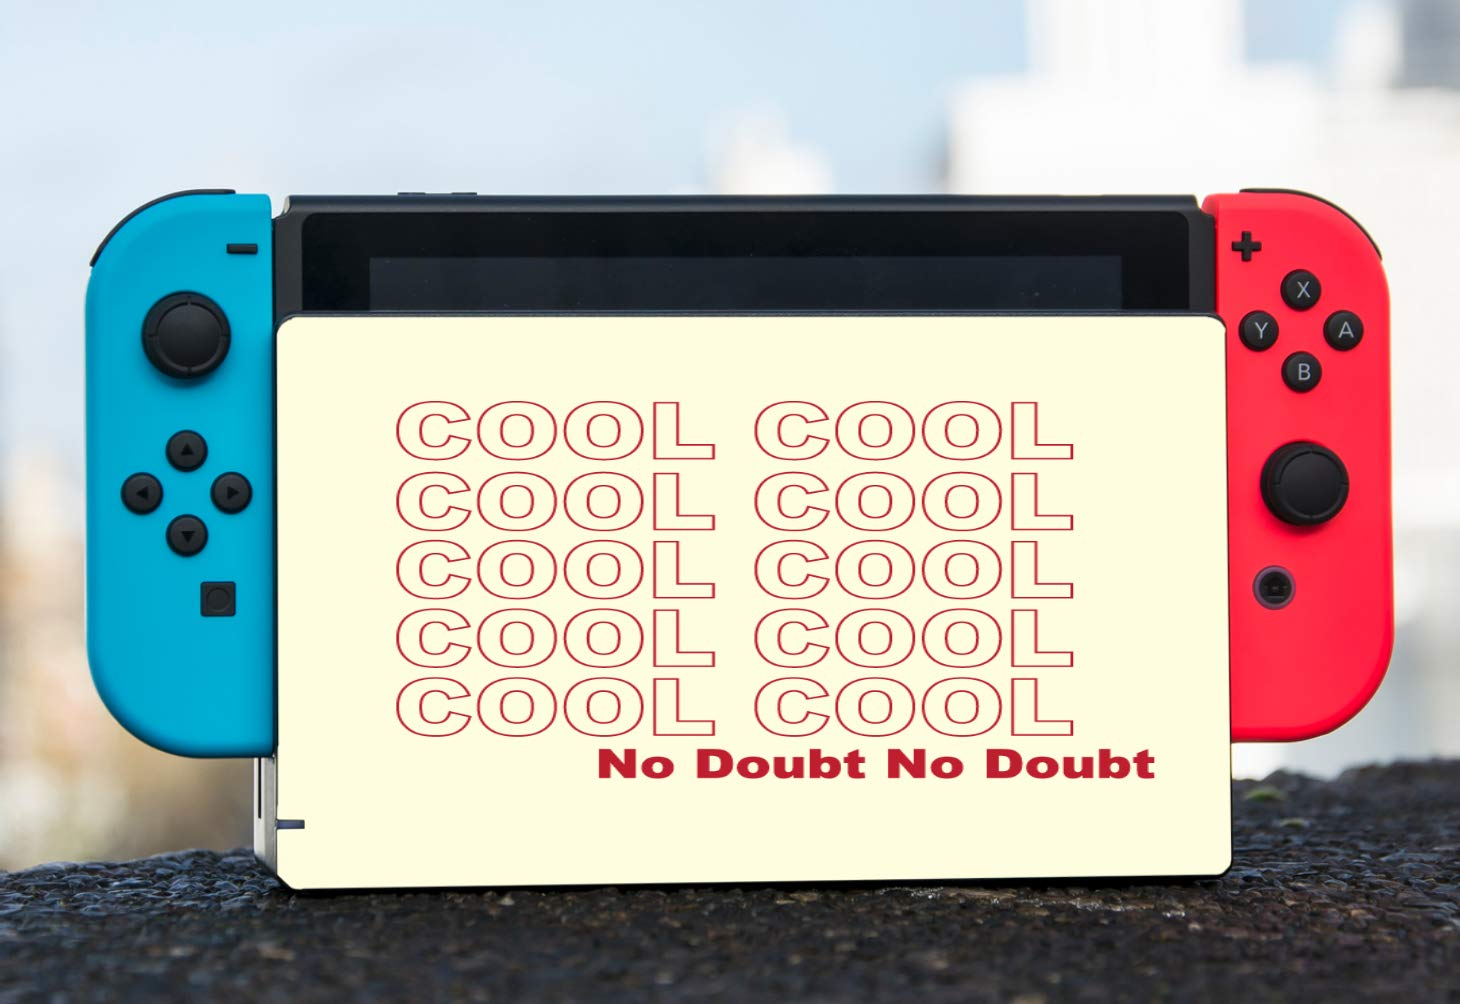 Cool Cool Cool Cool No Doubt Quote Vinyl Decal Sticker Skin by egeek amz for Nintendo Switch Dock